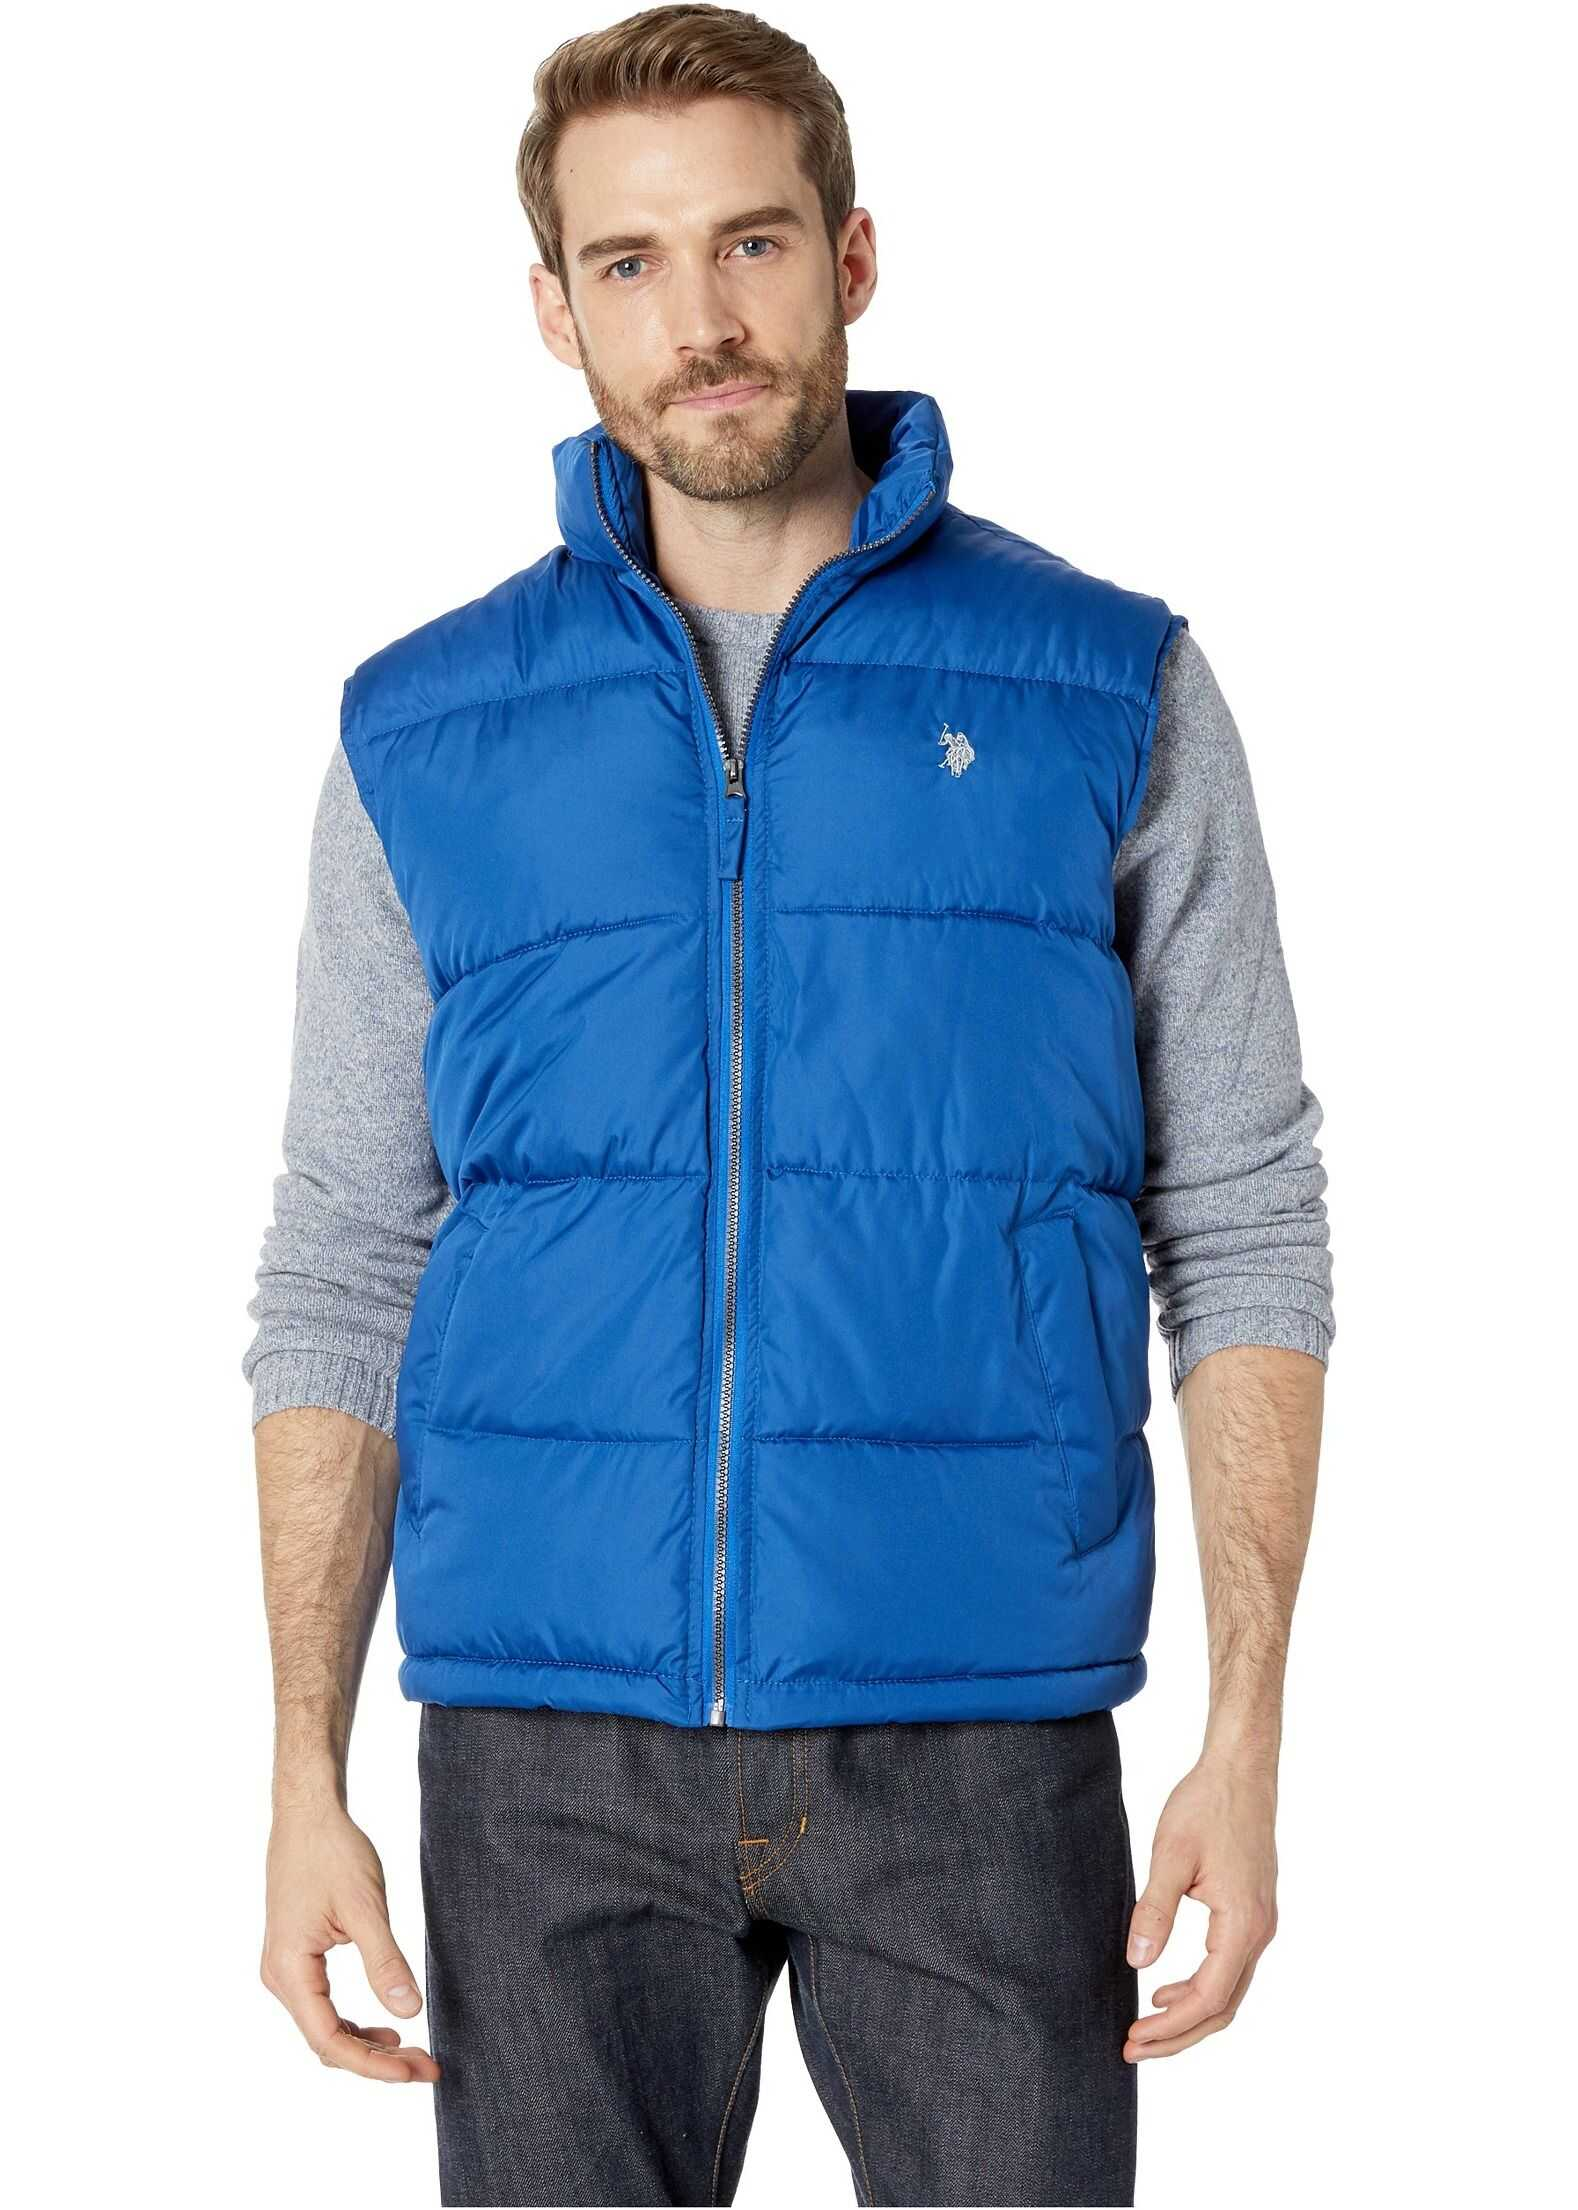 U.S. POLO ASSN. Basic Vest Small Horse Blue Whale